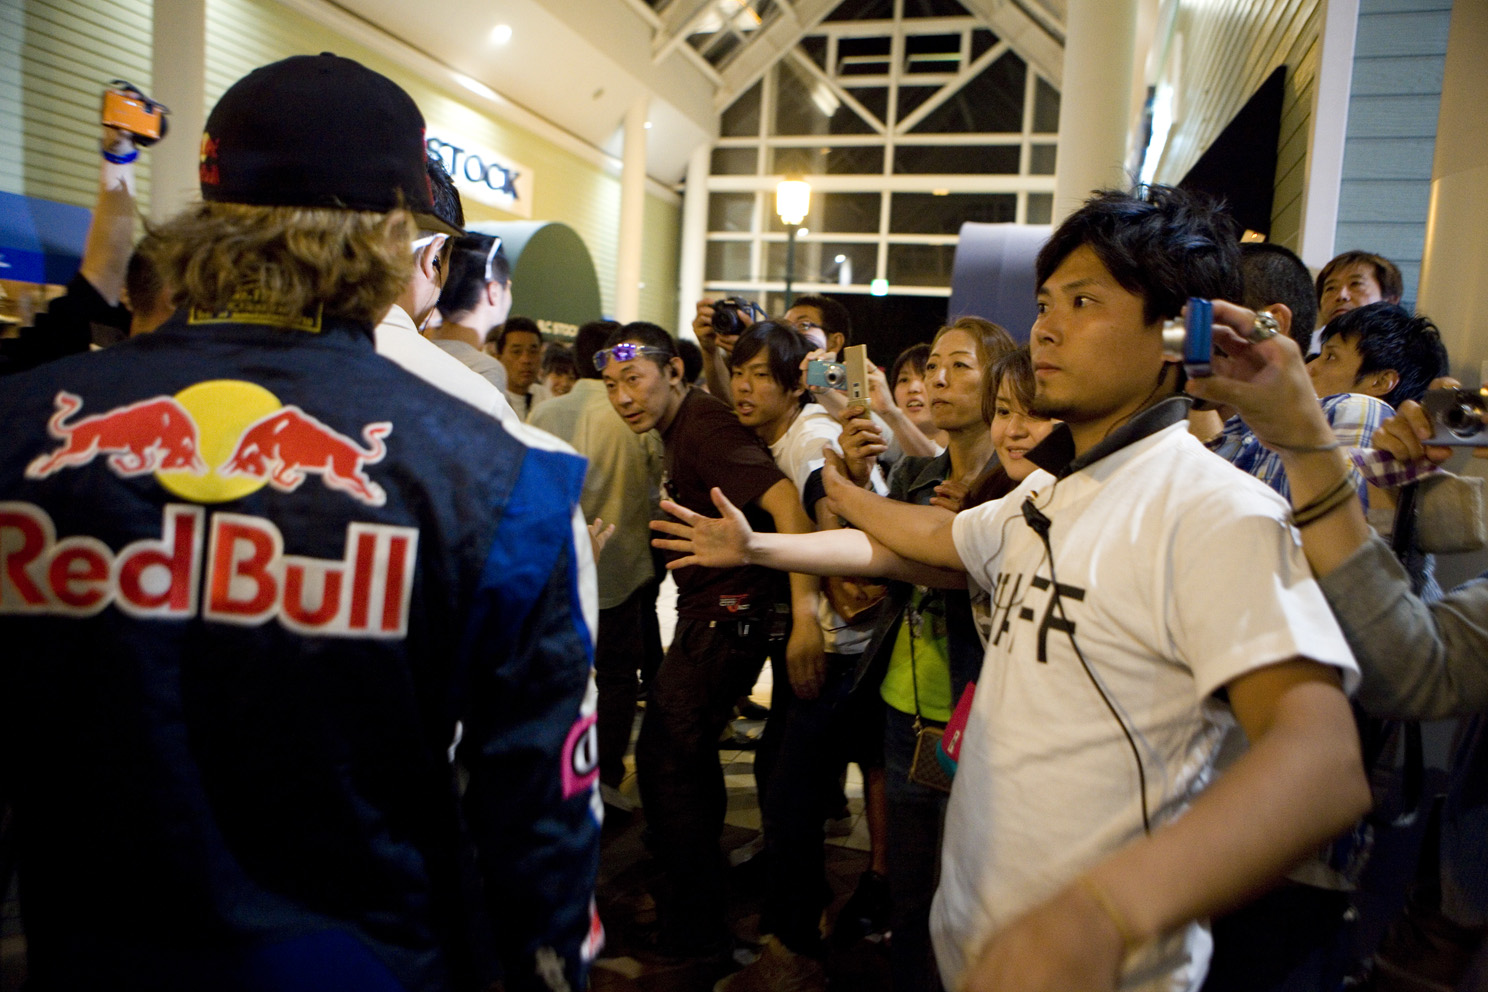 Red Bull and Citroën driver Kimi Räikkönen racing electric carts in a shopping centre in Japan.